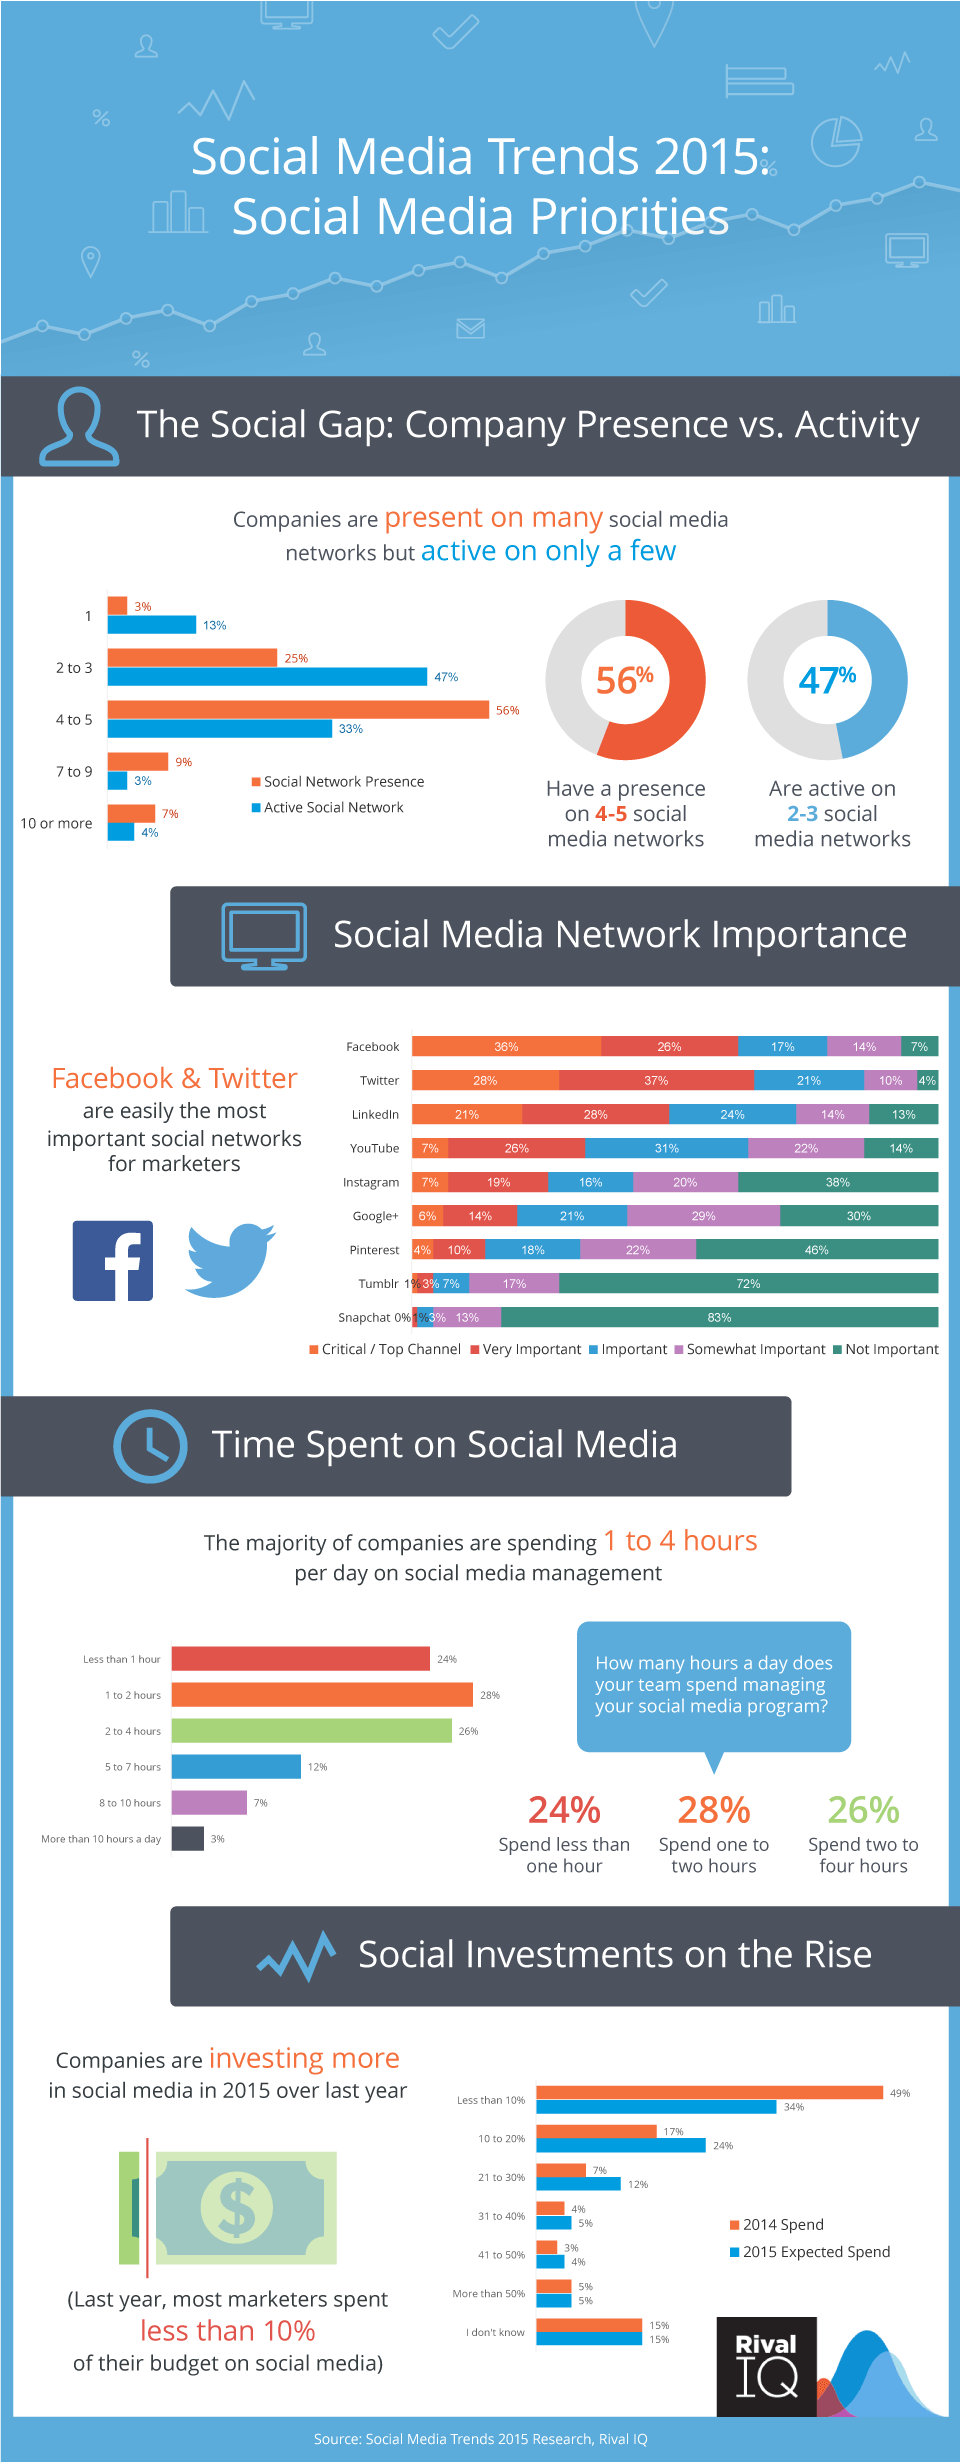 Social Media Priorities Research 2015